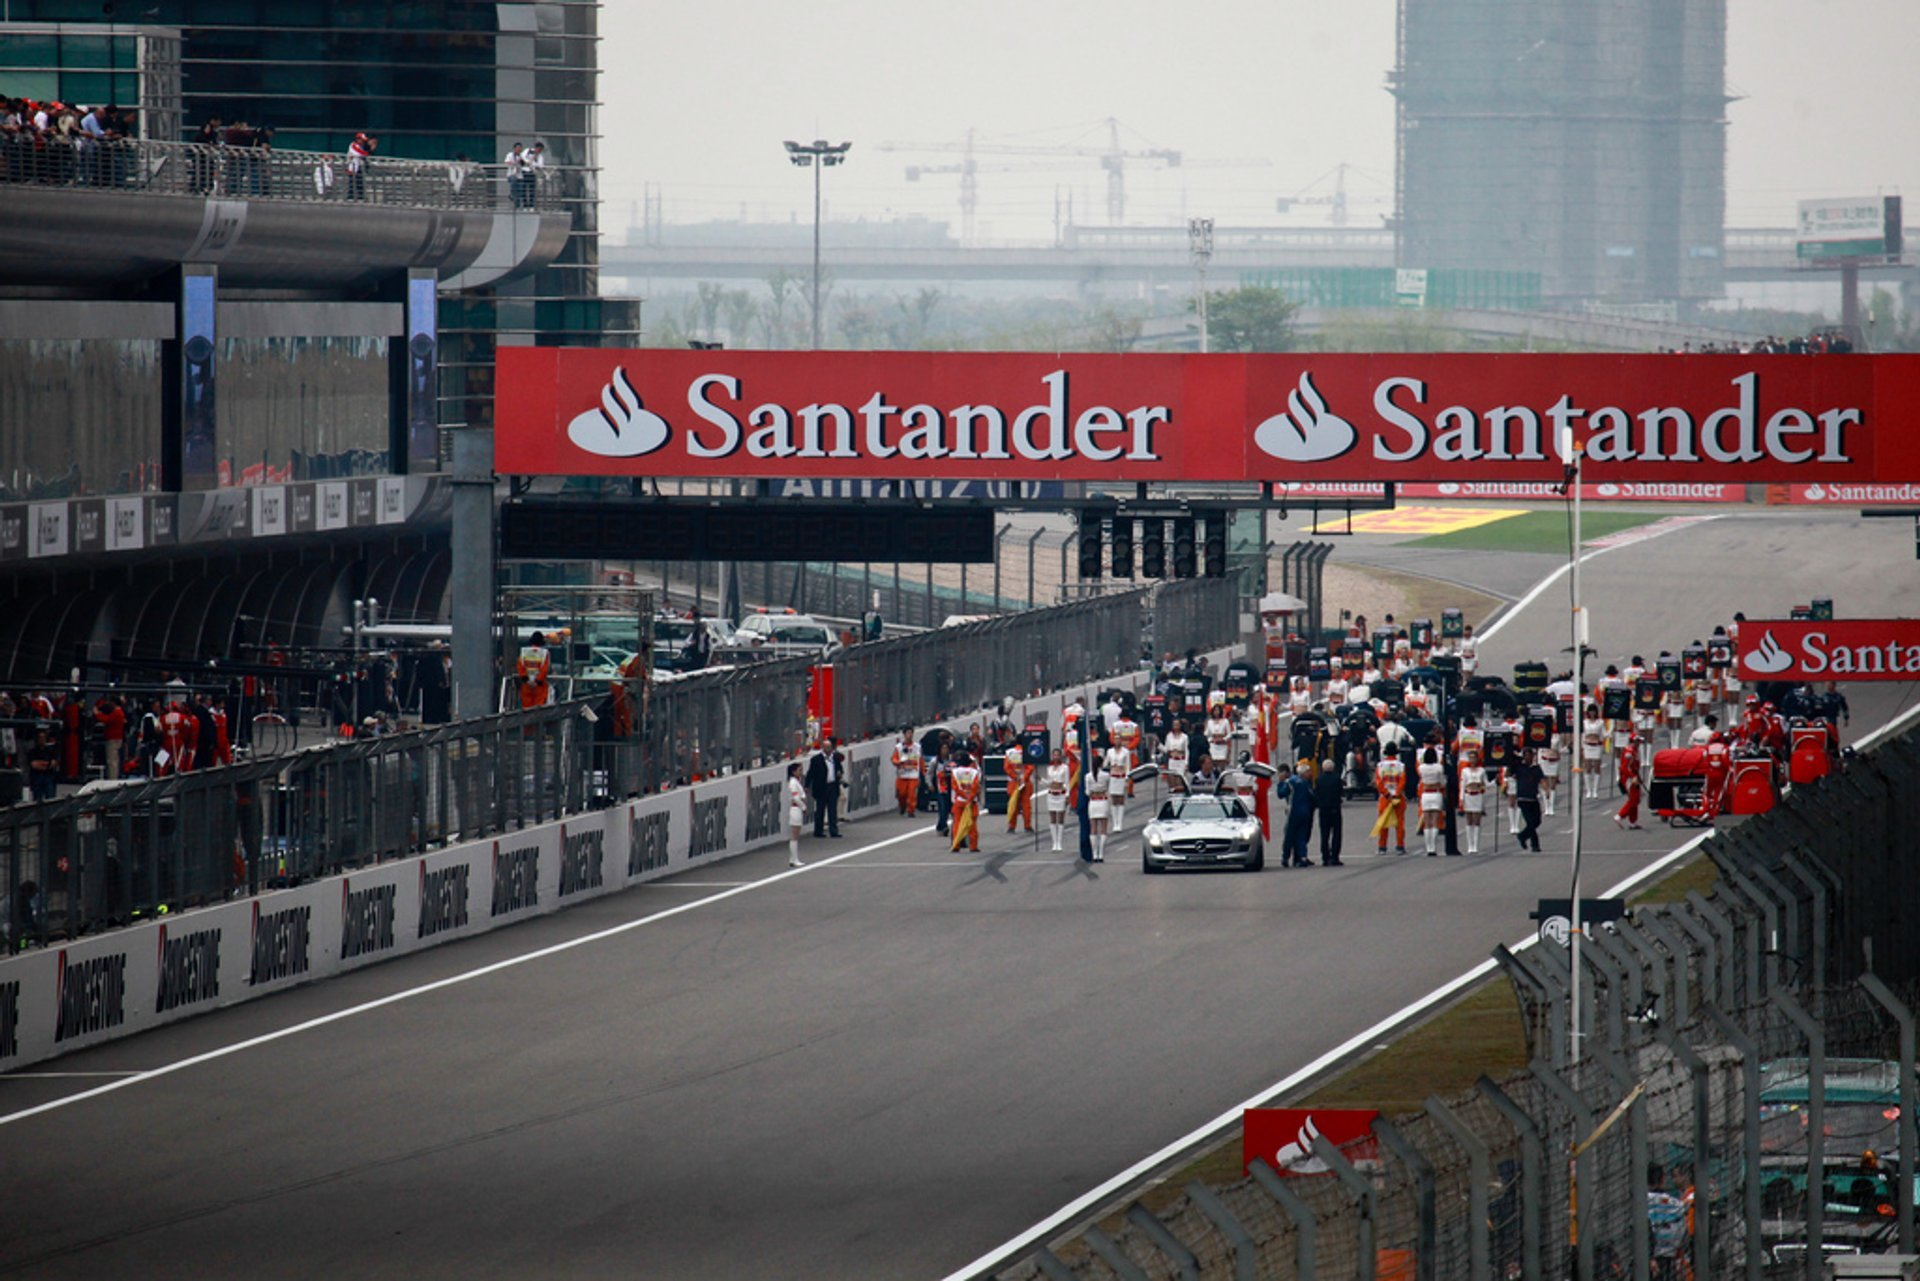 Formula 1 in Shanghai - Best Season